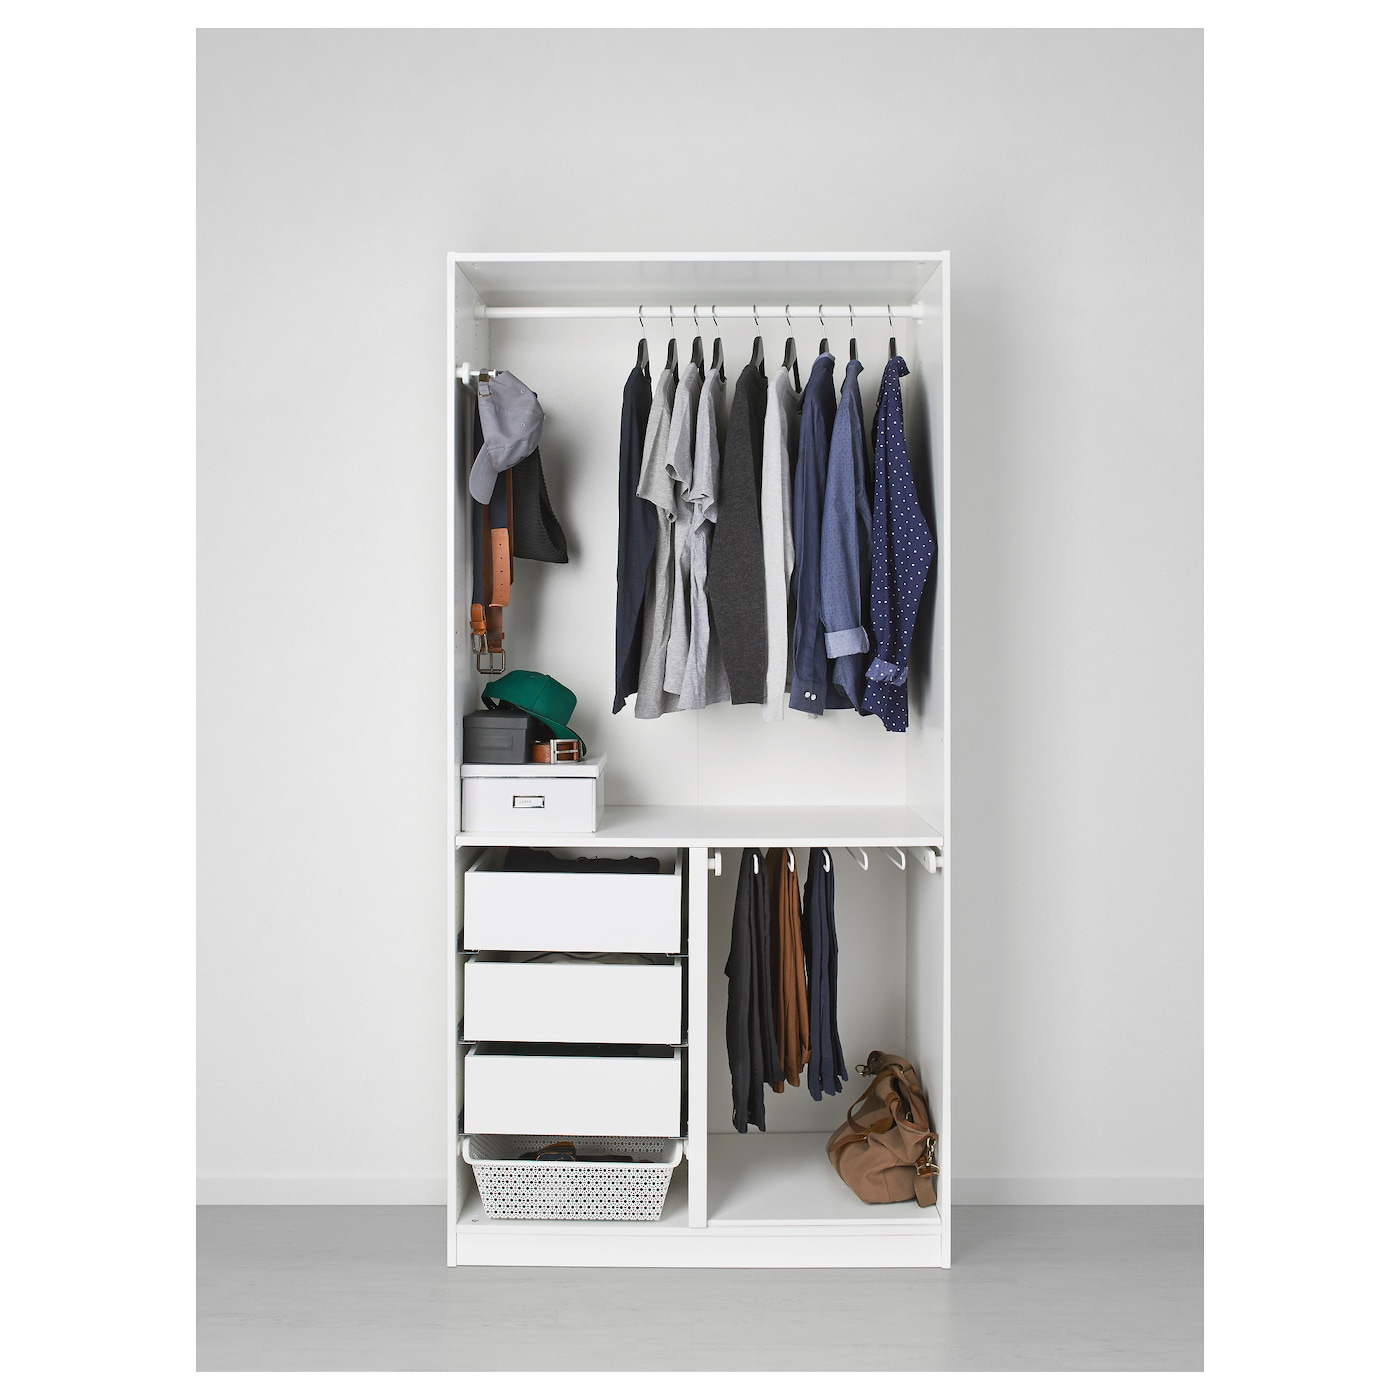 pax armoire penderie blanc tanem blanc 100x60x201 cm ikea. Black Bedroom Furniture Sets. Home Design Ideas